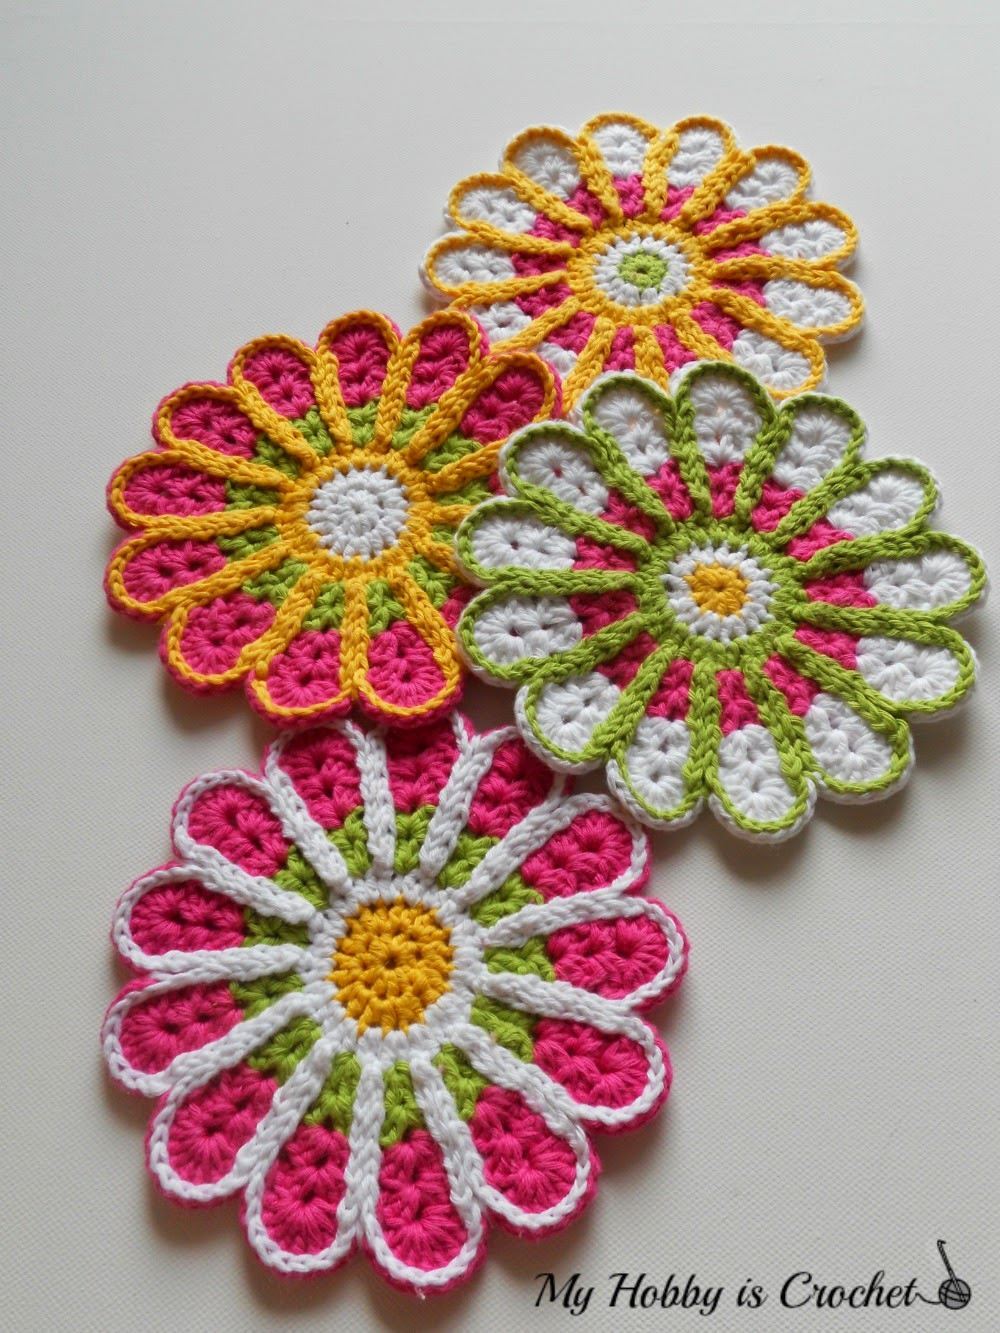 Free Crochet Flower Patterns Awesome My Hobby is Crochet Chrysanthemum Flower Coaster – Free Of Amazing 42 Images Free Crochet Flower Patterns